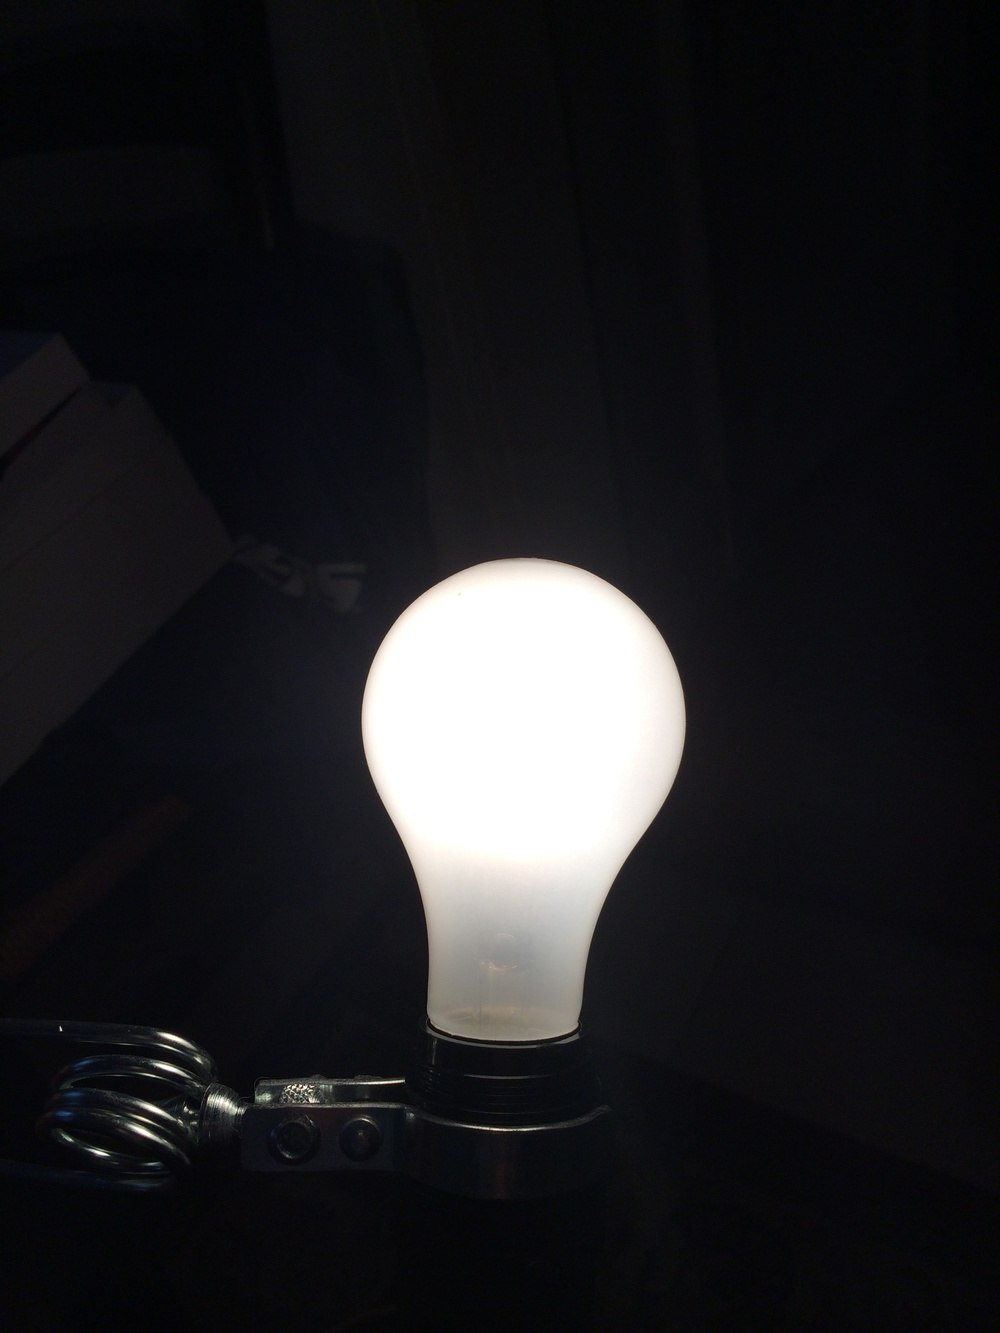 Goodbye 60 watt incandescent bulb